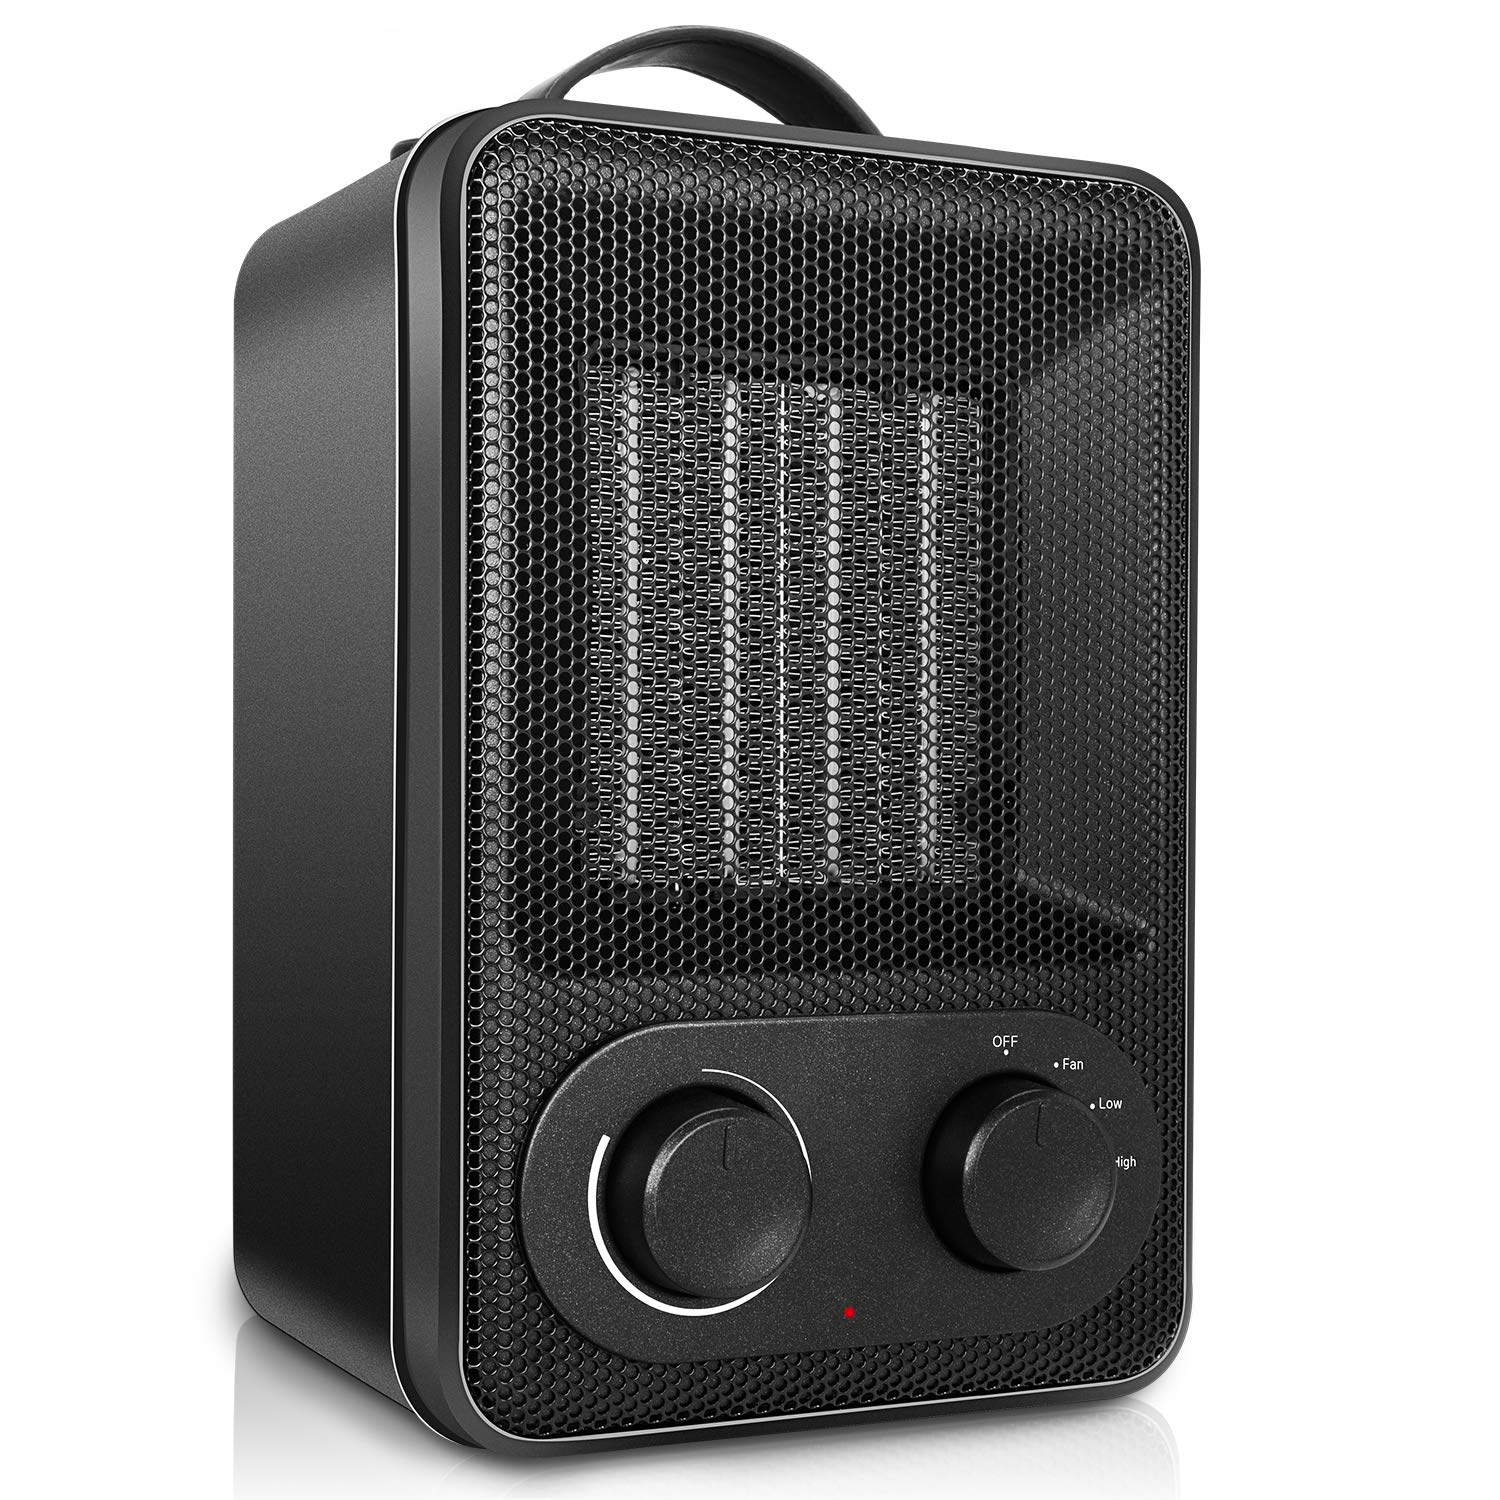 Space Heater with Adjustable Thermostat, 1500W 850W Adjustable Electric Heater, Portable Ceramic Heater with Tip-Over Overheat Protection, Suit for Small Middle Rooms, Office, Floor, Desk